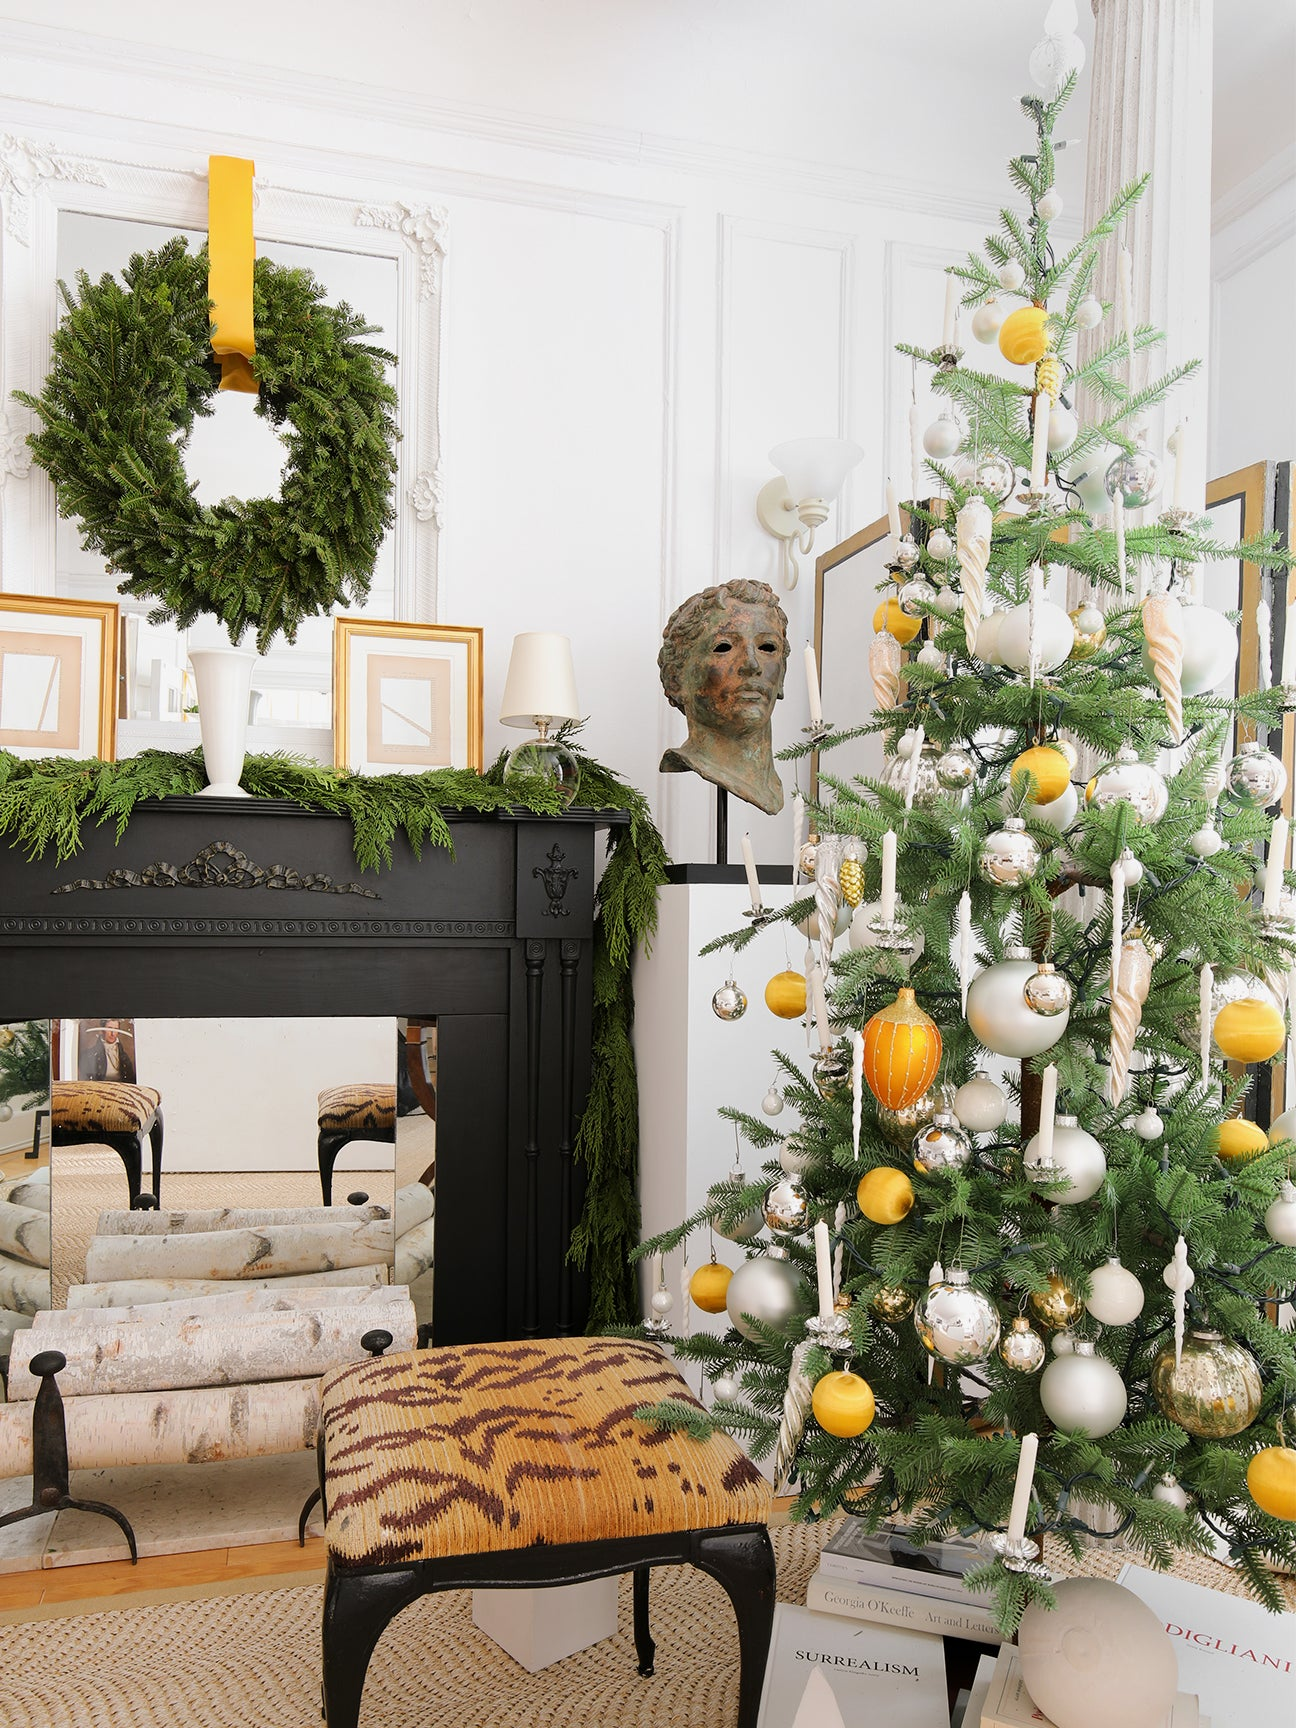 00-FEATURE-josh-young-holiday-decorating-tips-domino